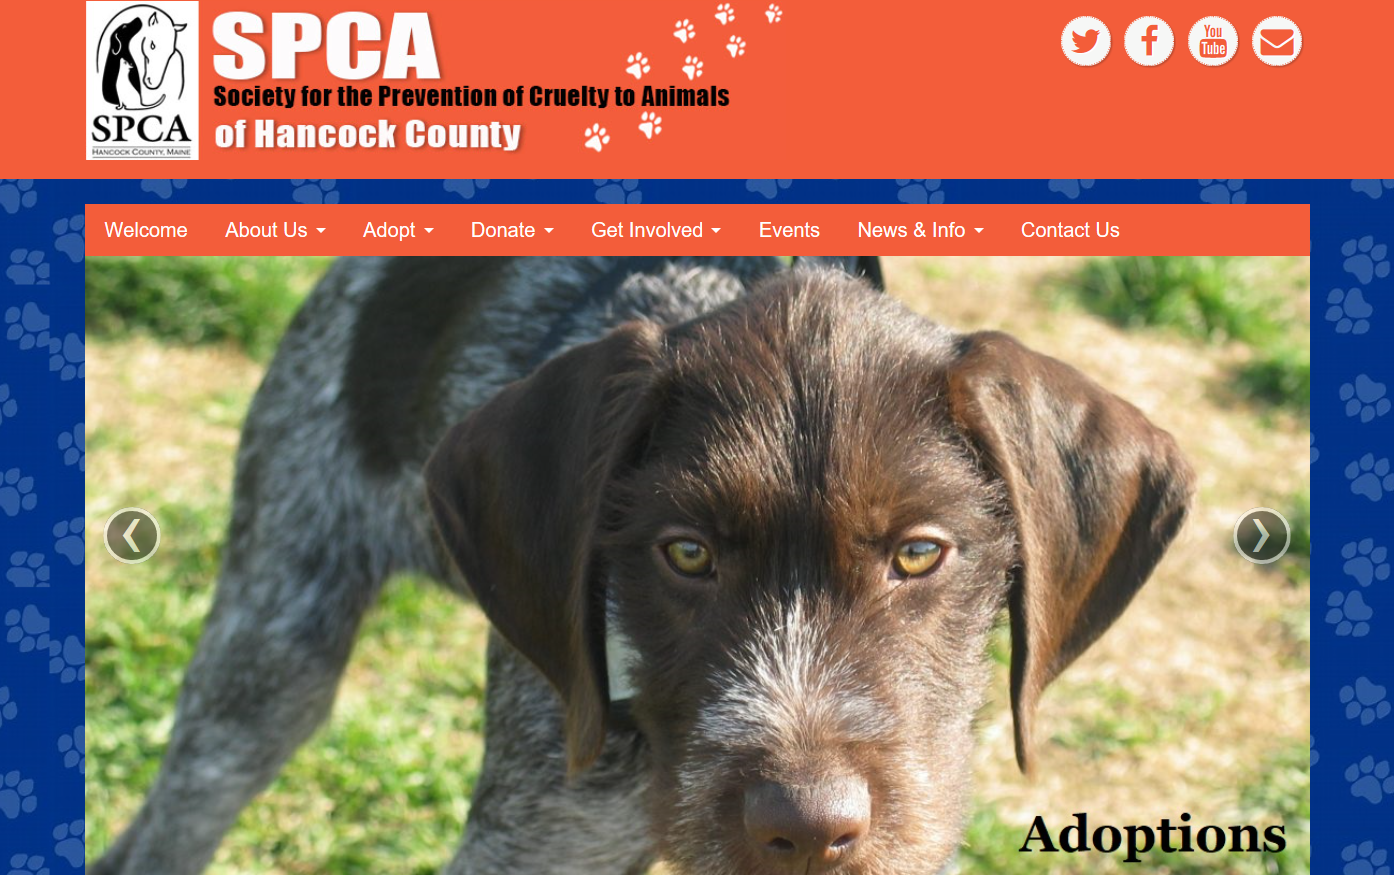 SPCA of Hancock County, ME